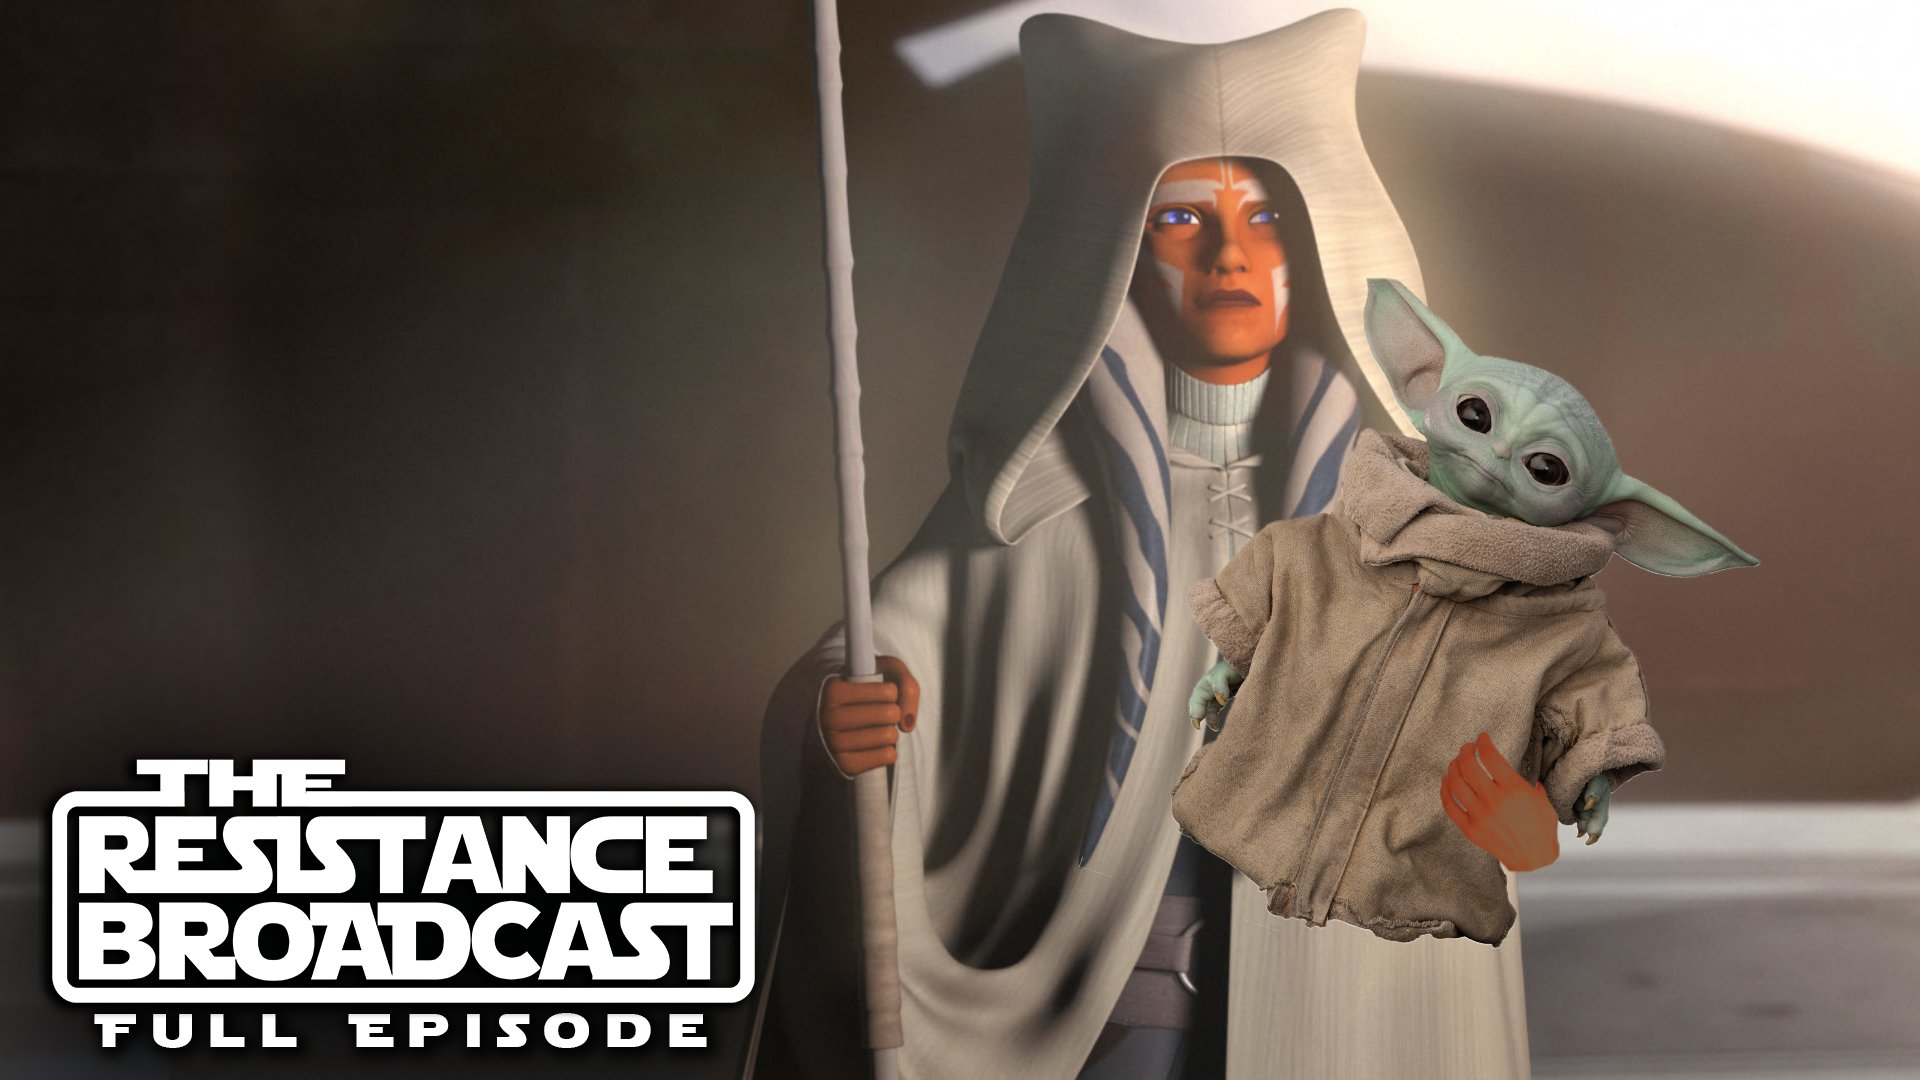 The Resistance Broadcast Will Baby Yoda Appear In Other Star Wars Projects Star Wars News Net